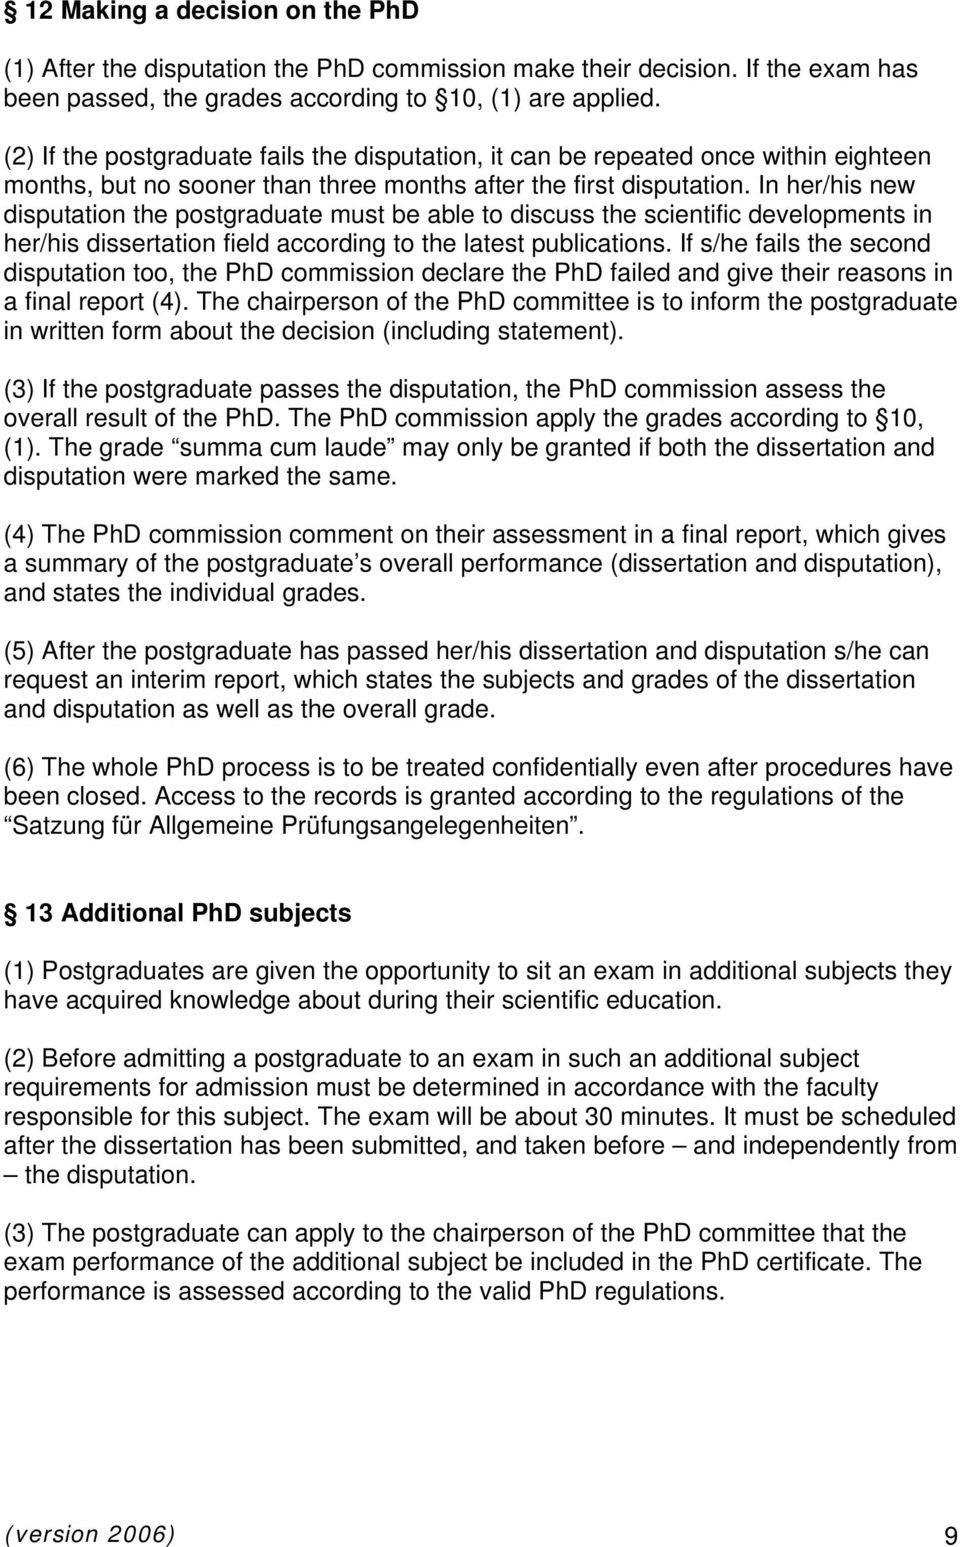 In her/his new disputation the postgraduate must be able to discuss the scientific developments in her/his dissertation field according to the latest publications.